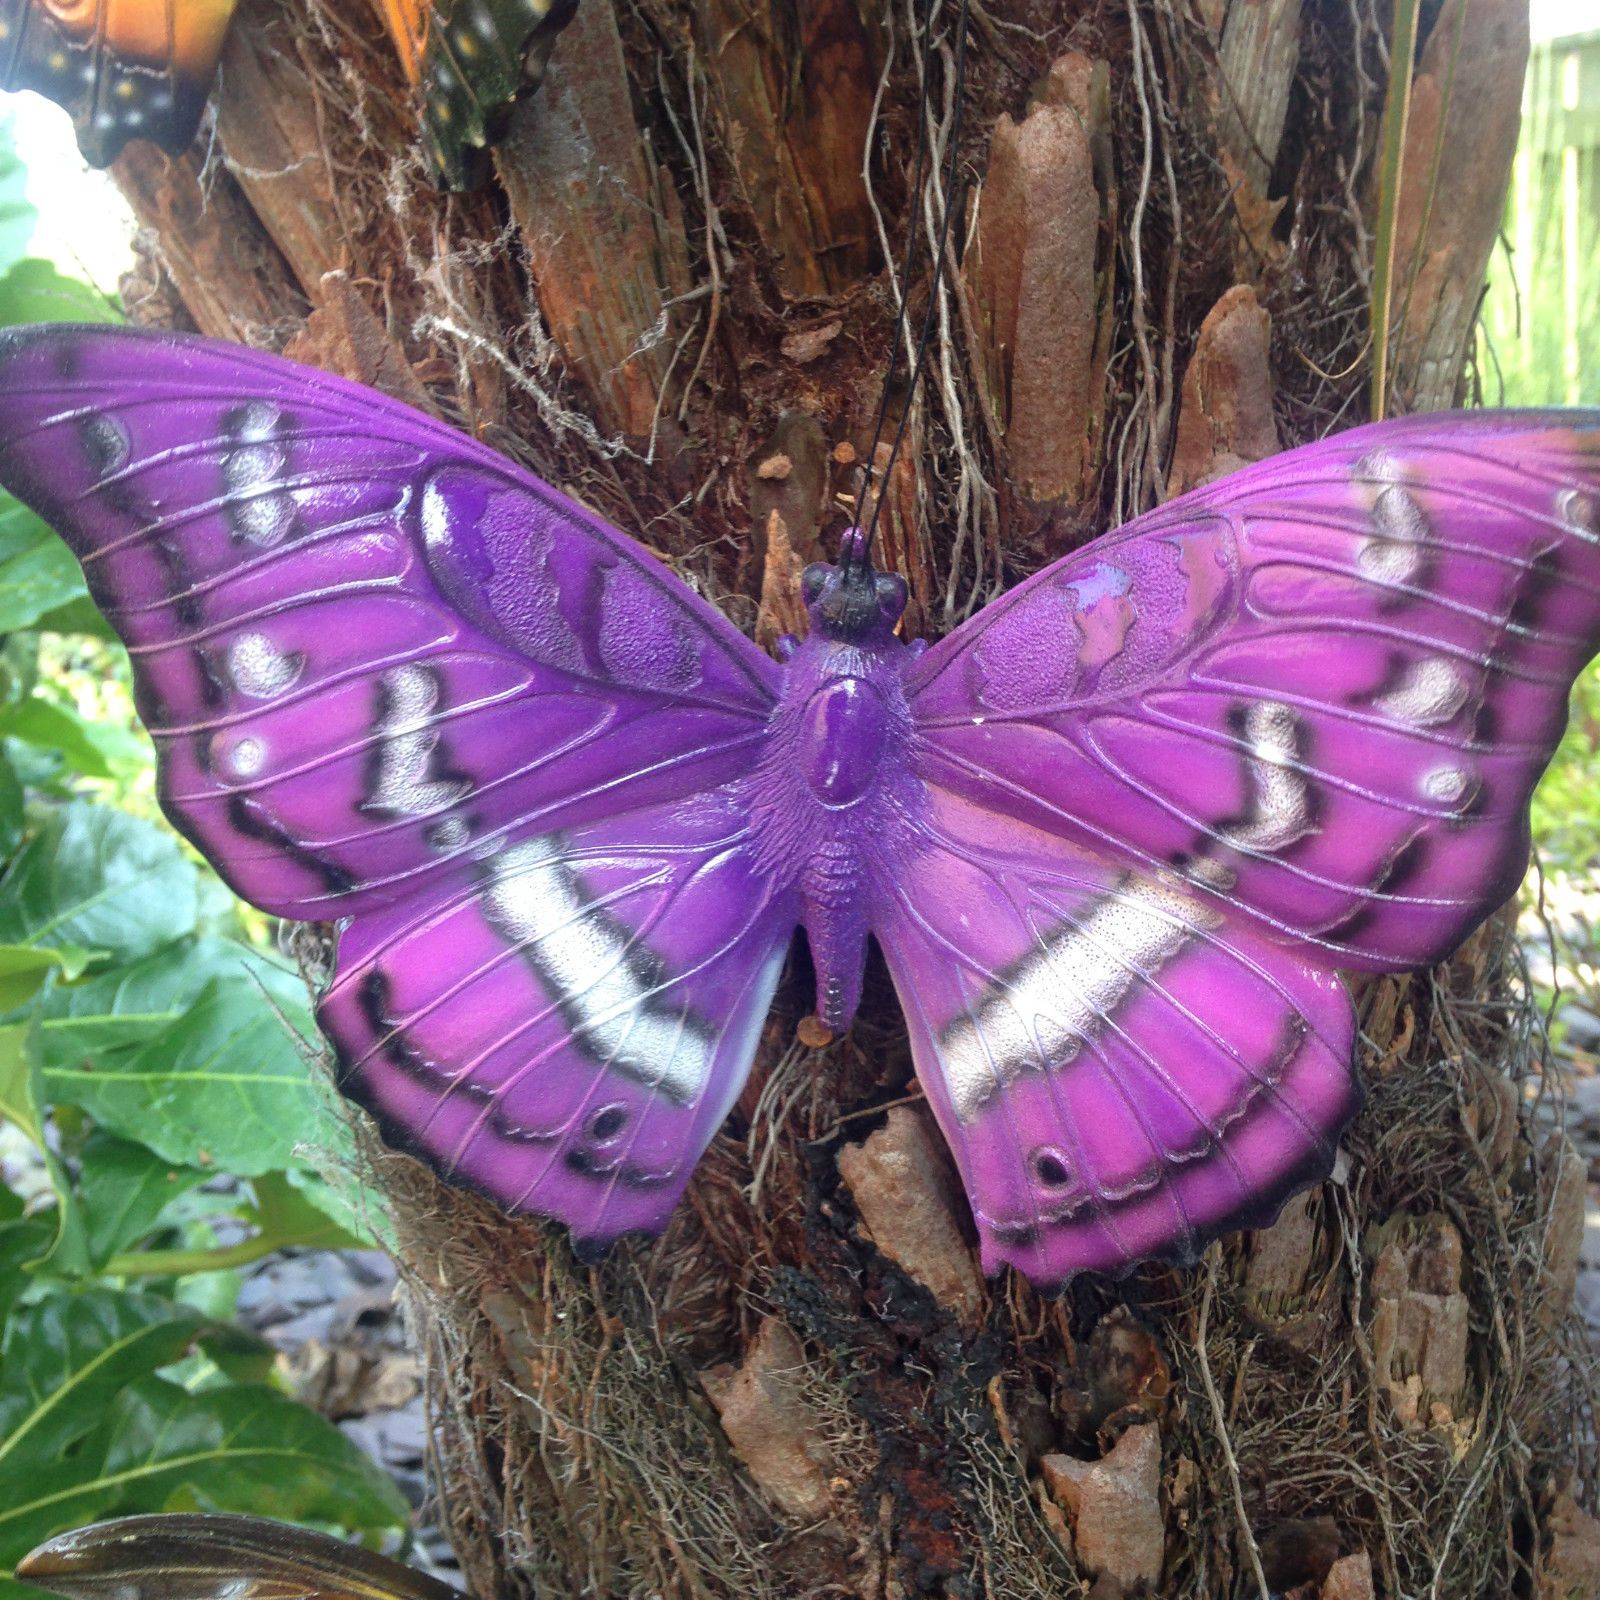 Butterfly lawn ornaments -  Butterfly Wall Art Purple Vivid Arts Garden Ornament Indoors Outdoors View